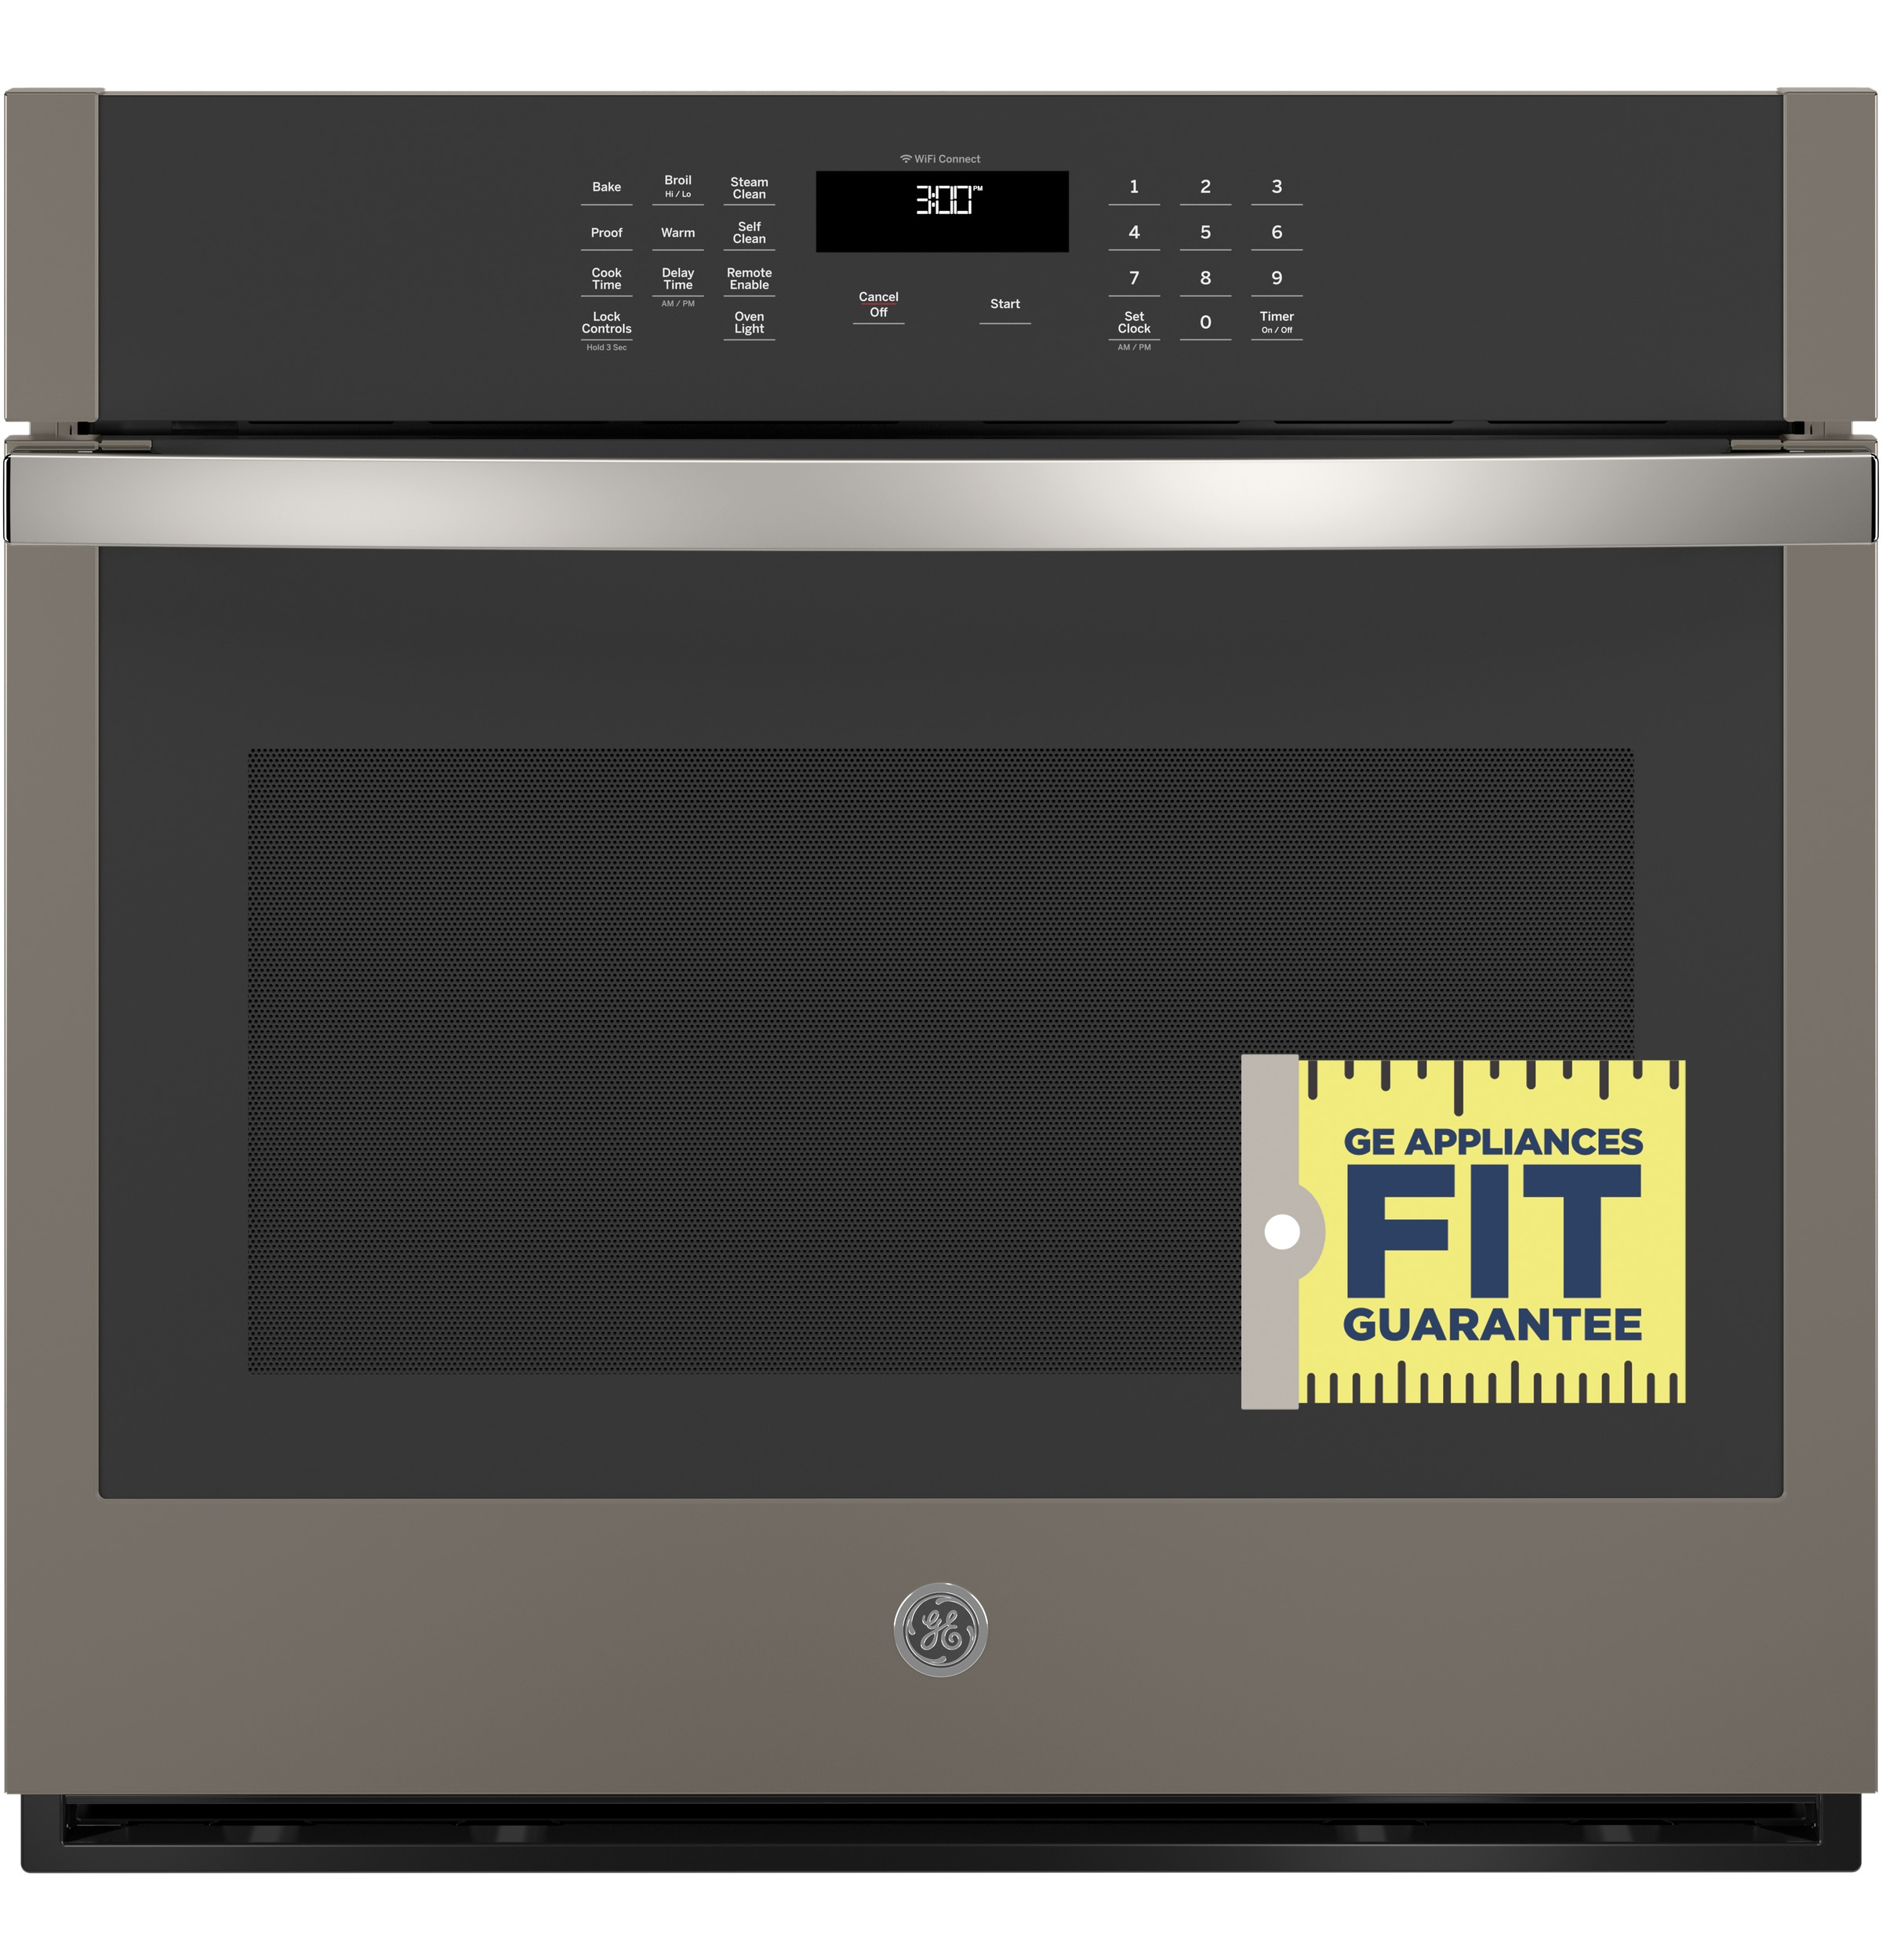 "Model: JTS3000ENES | GE GE® 30"" Smart Built-In Self-Clean Single Wall Oven with Never-Scrub Racks"